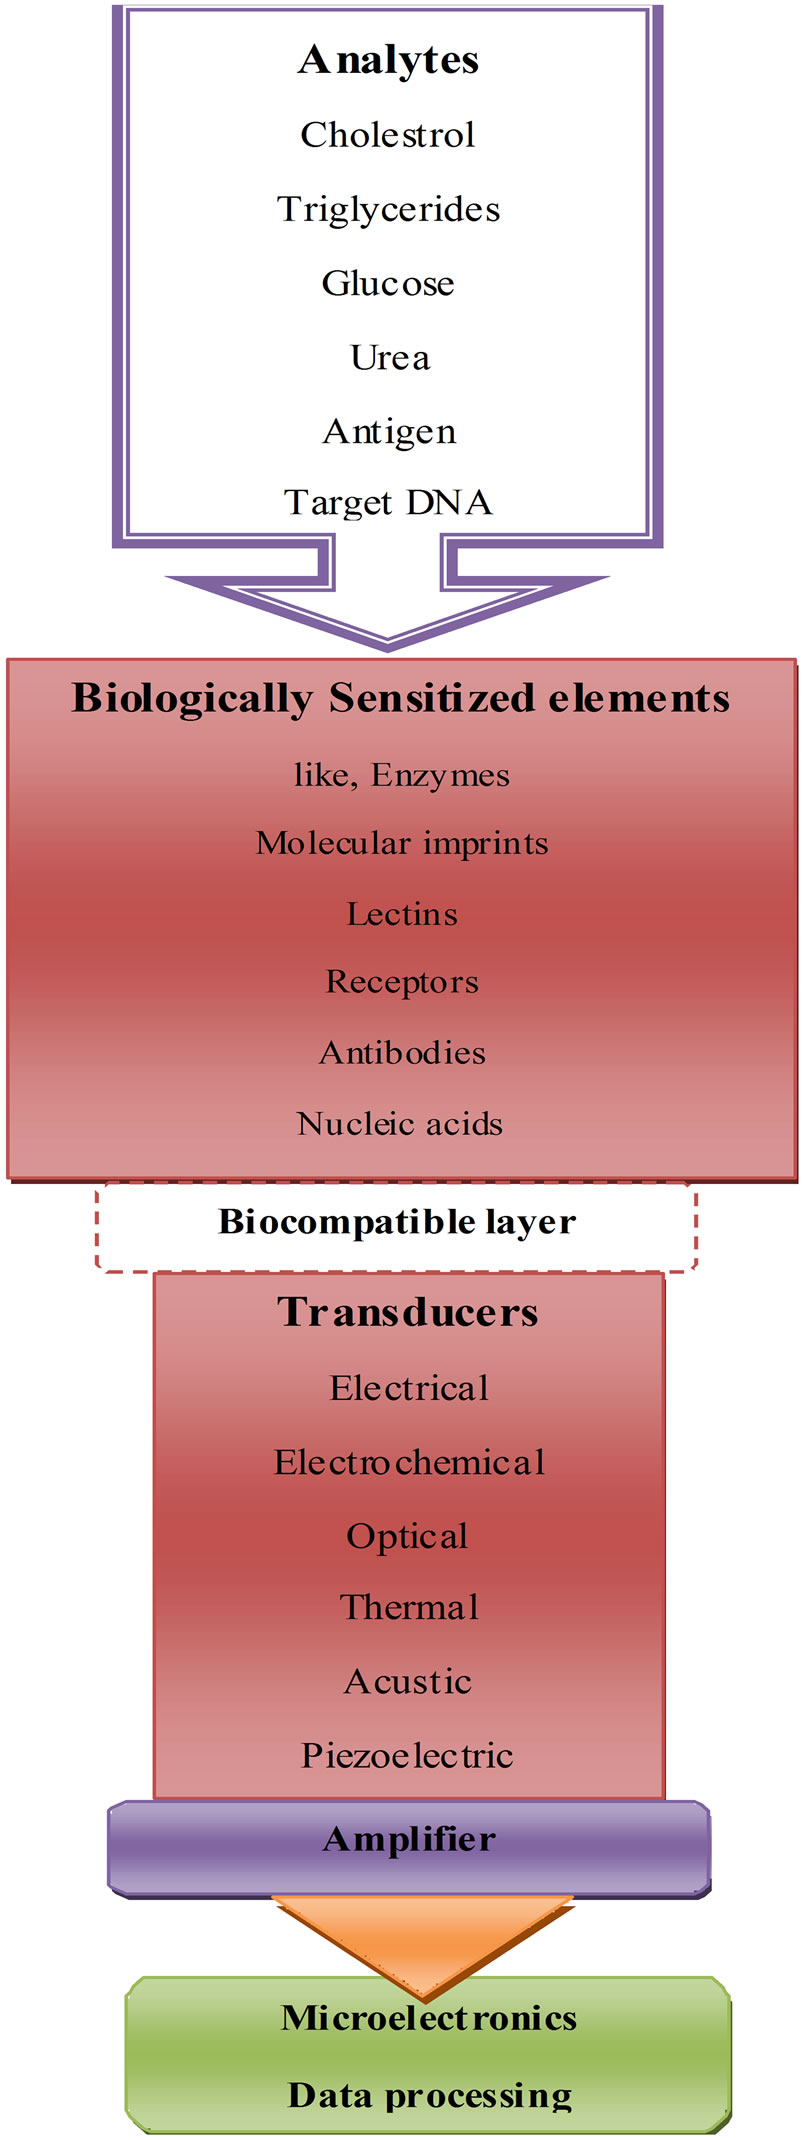 Implications of Nanobiosensors in Agriculture